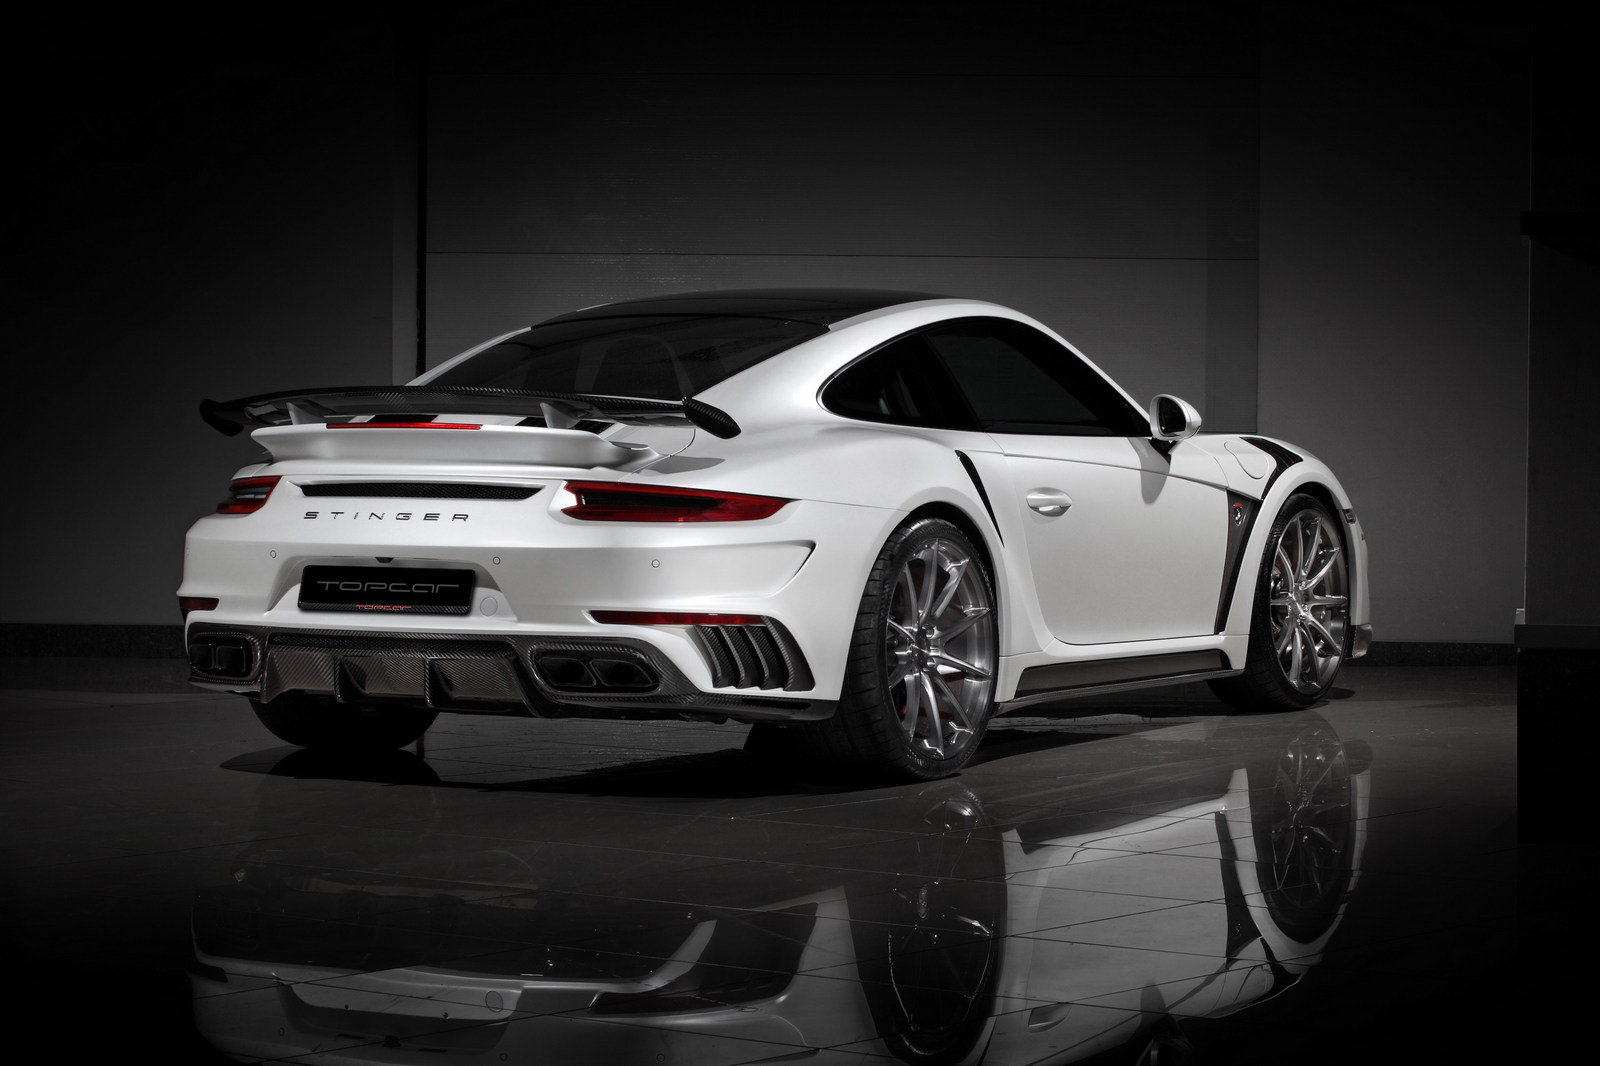 2016 porsche 911 turbo s stinger gt3 gen 2 by top car picture 688314 car review top speed. Black Bedroom Furniture Sets. Home Design Ideas